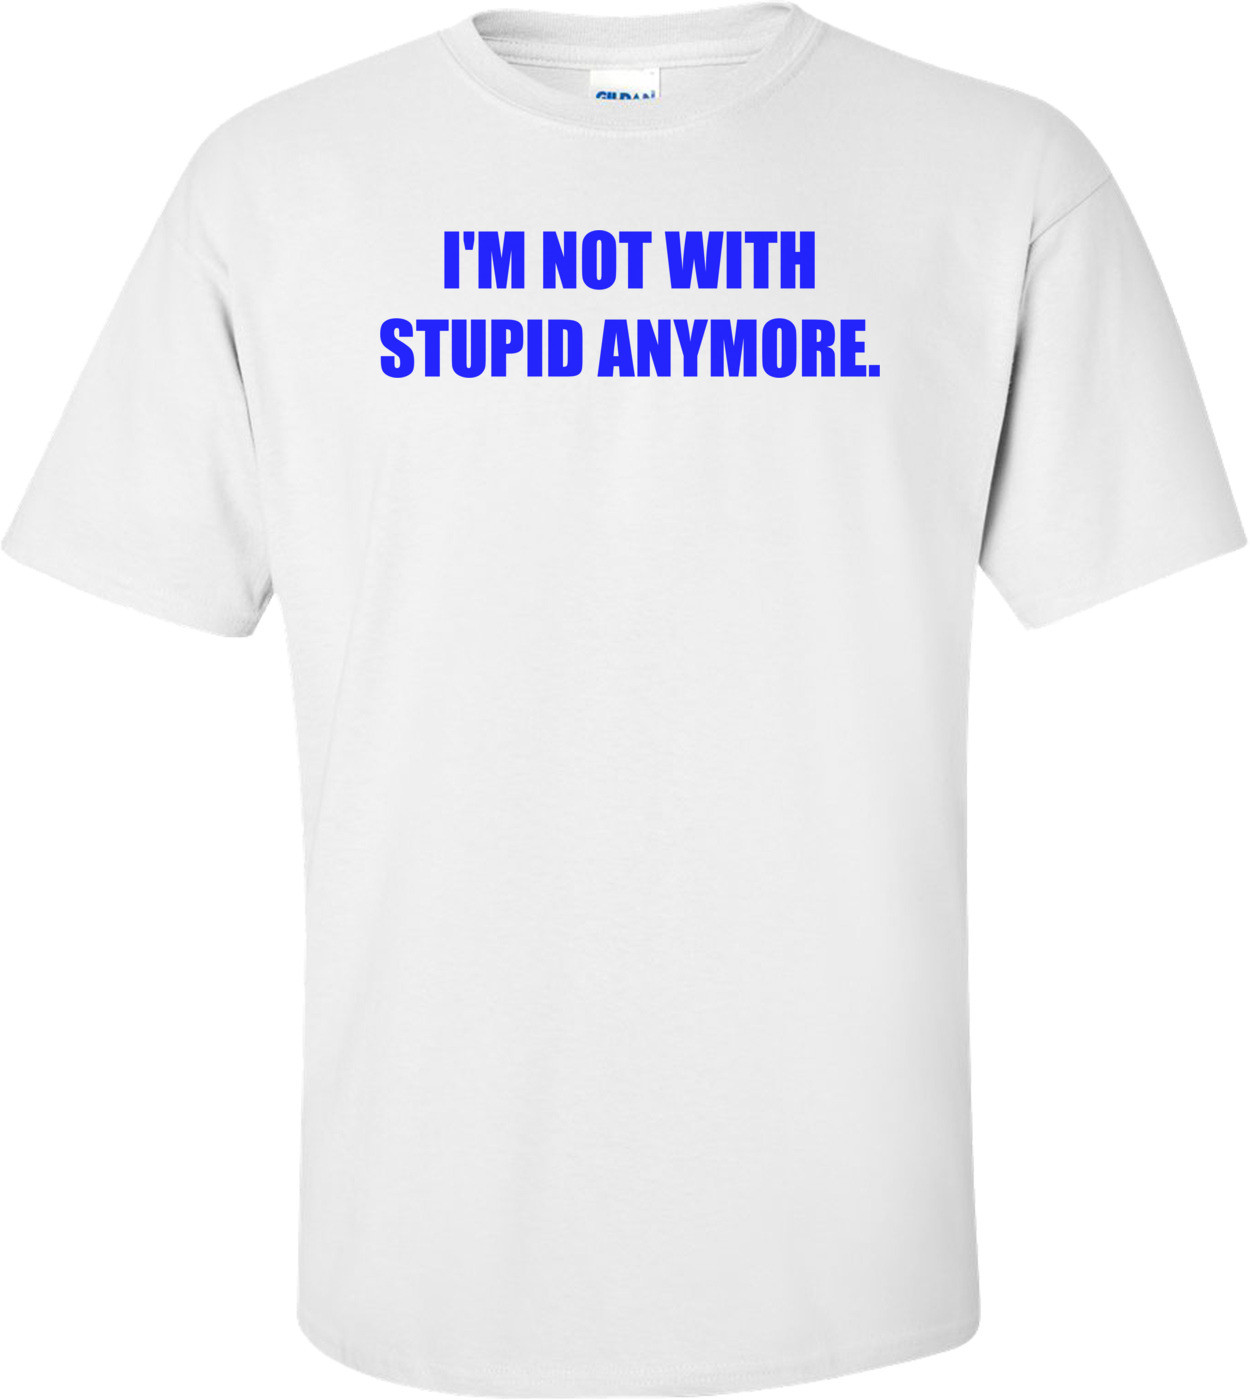 I'M NOT WITH STUPID ANYMORE. Shirt